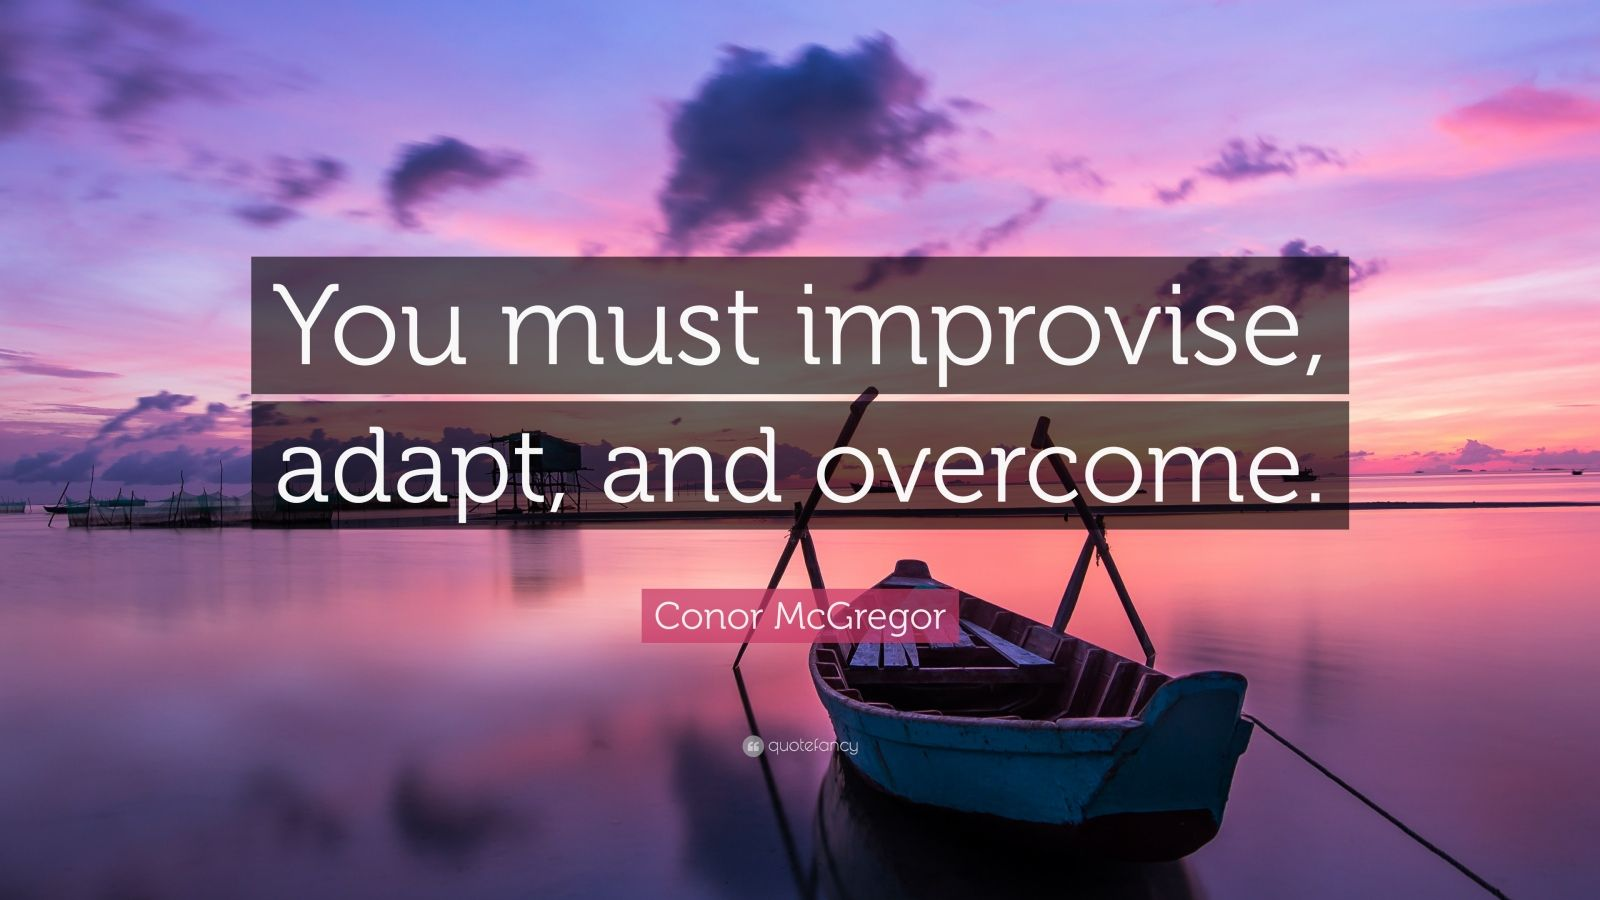 """Conor McGregor Quote: """"You must improvise, adapt, and overcome."""""""